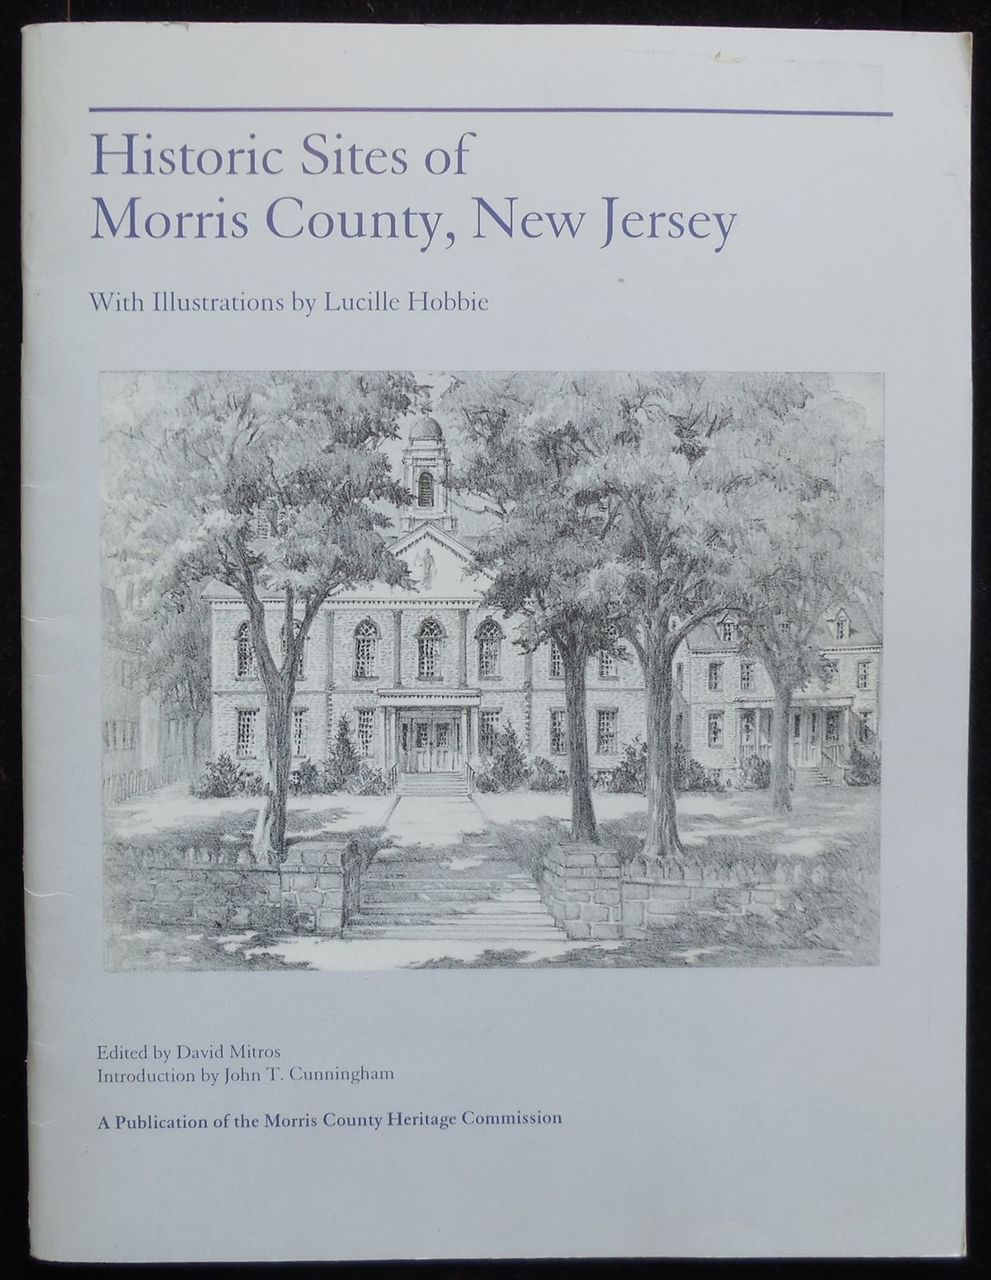 HISTORIC SITES OF MORRIS COUNTY, by David Mitros - 1996